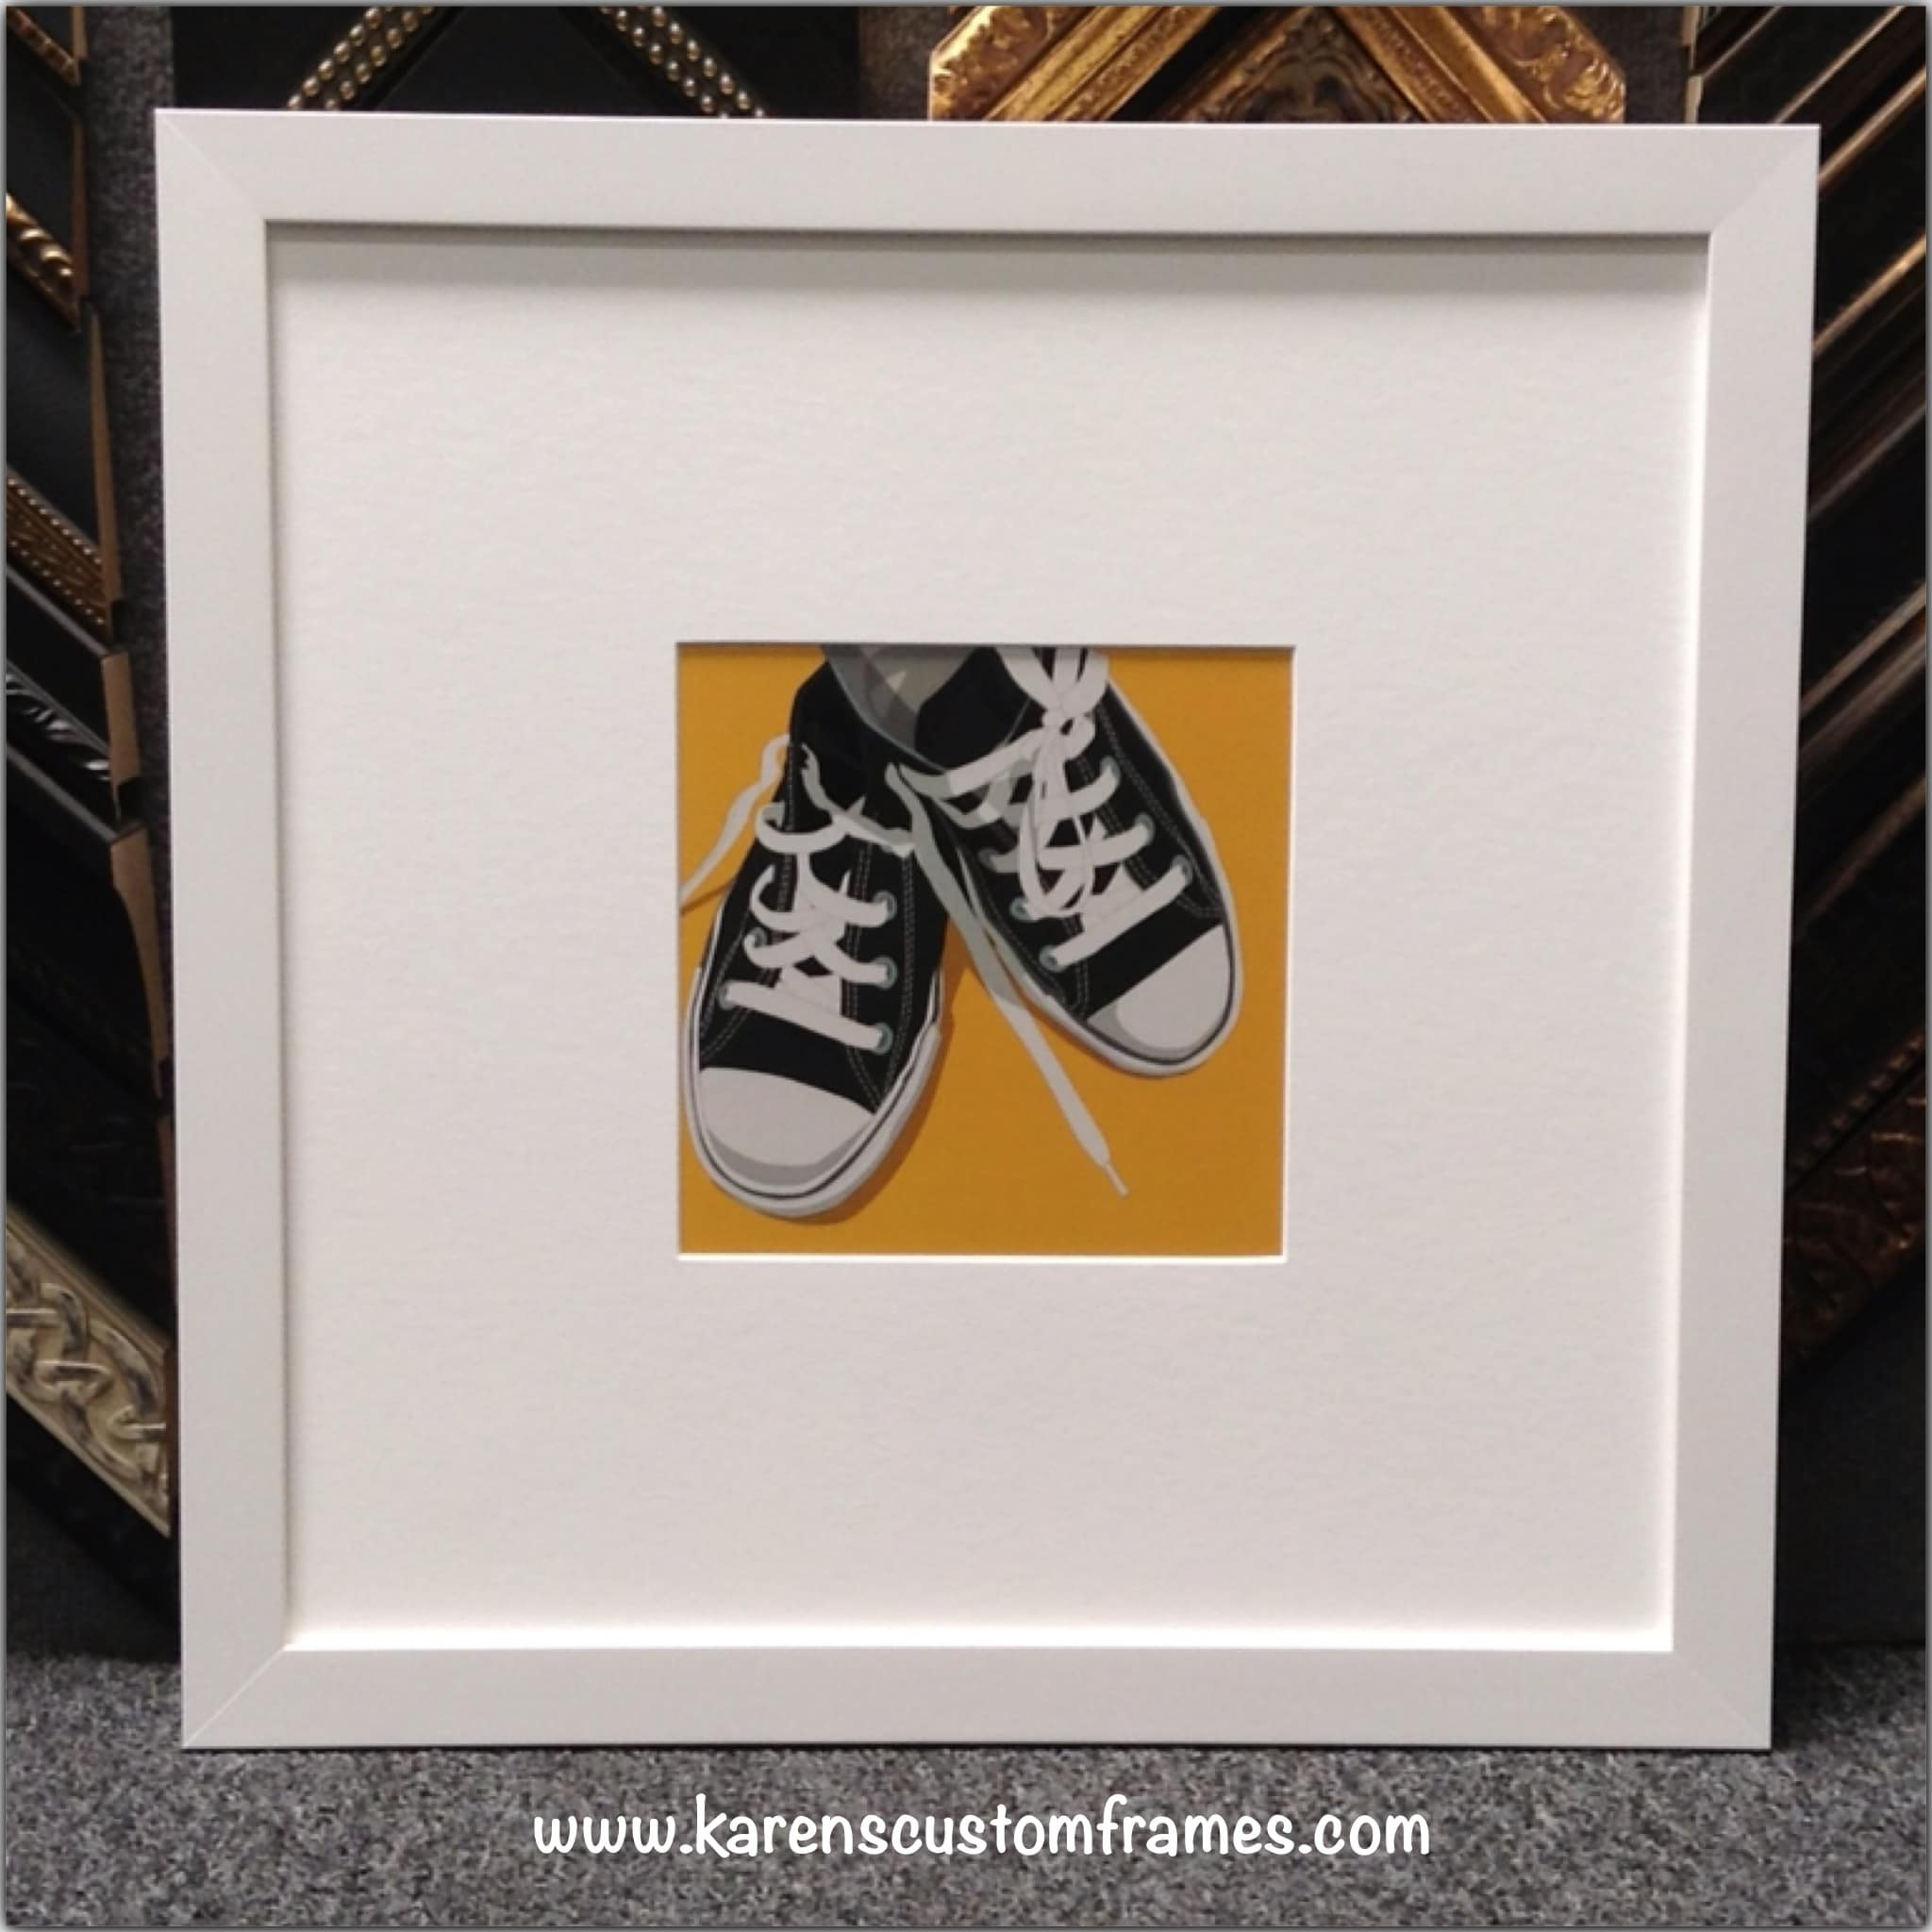 Poster Art | Custom Design and Framing by Karen's Detail Custom Frames, Orange County CA